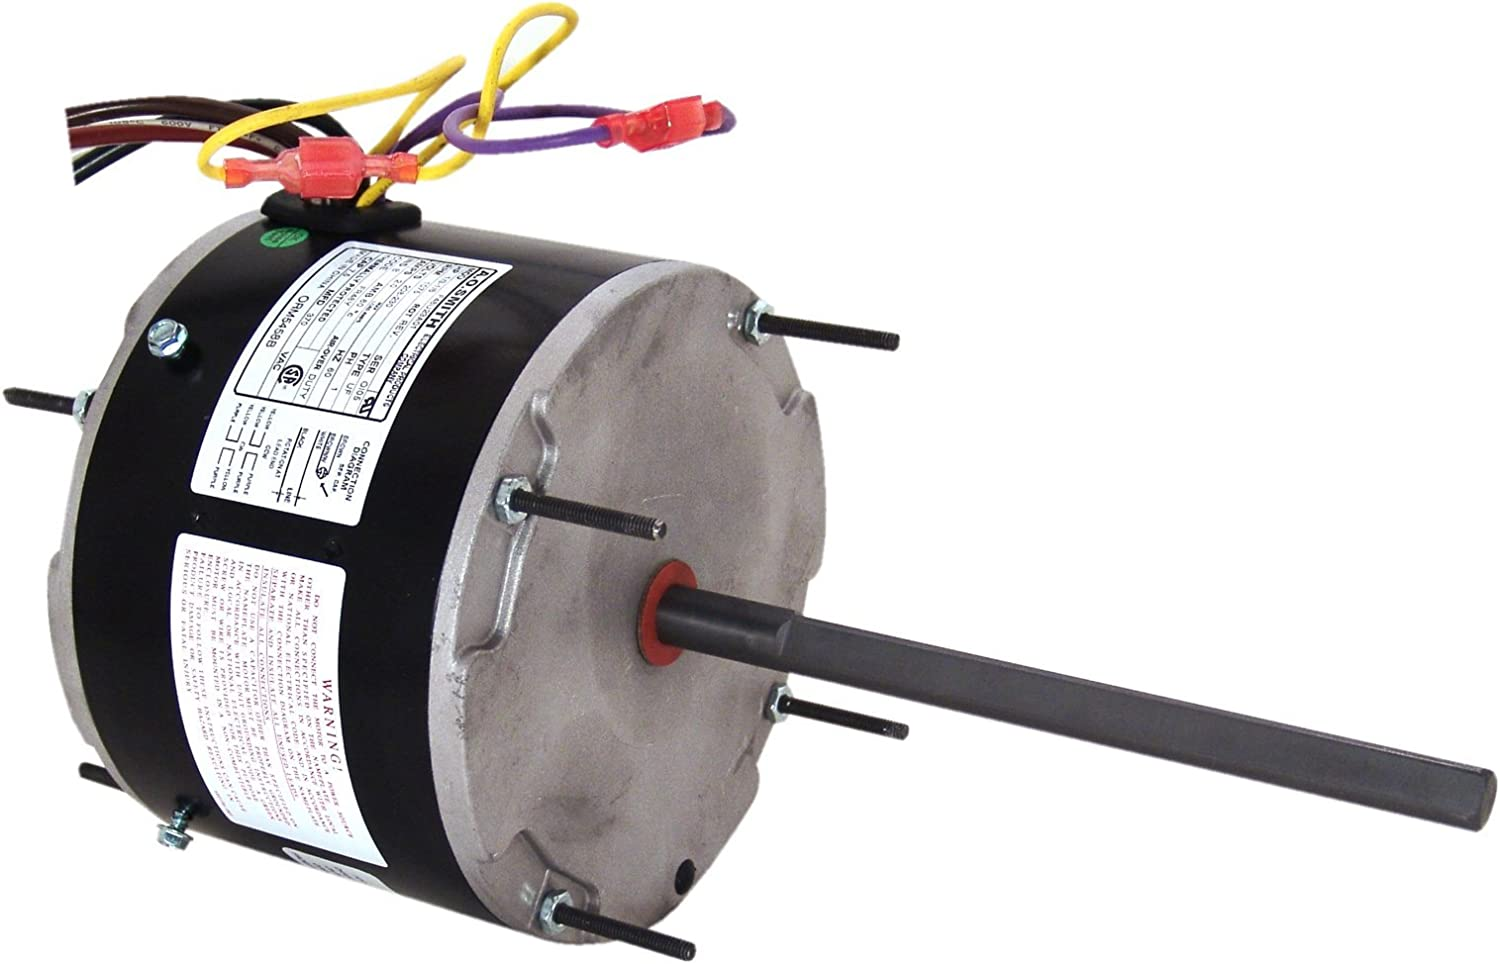 A.O. Smith ORM5458 1/3-1/6 HP, 1075 RPM, 208-230 volts, 2 Amps, 48Y Frame, Sleeve Bearing Condenser Motor (Renewed)